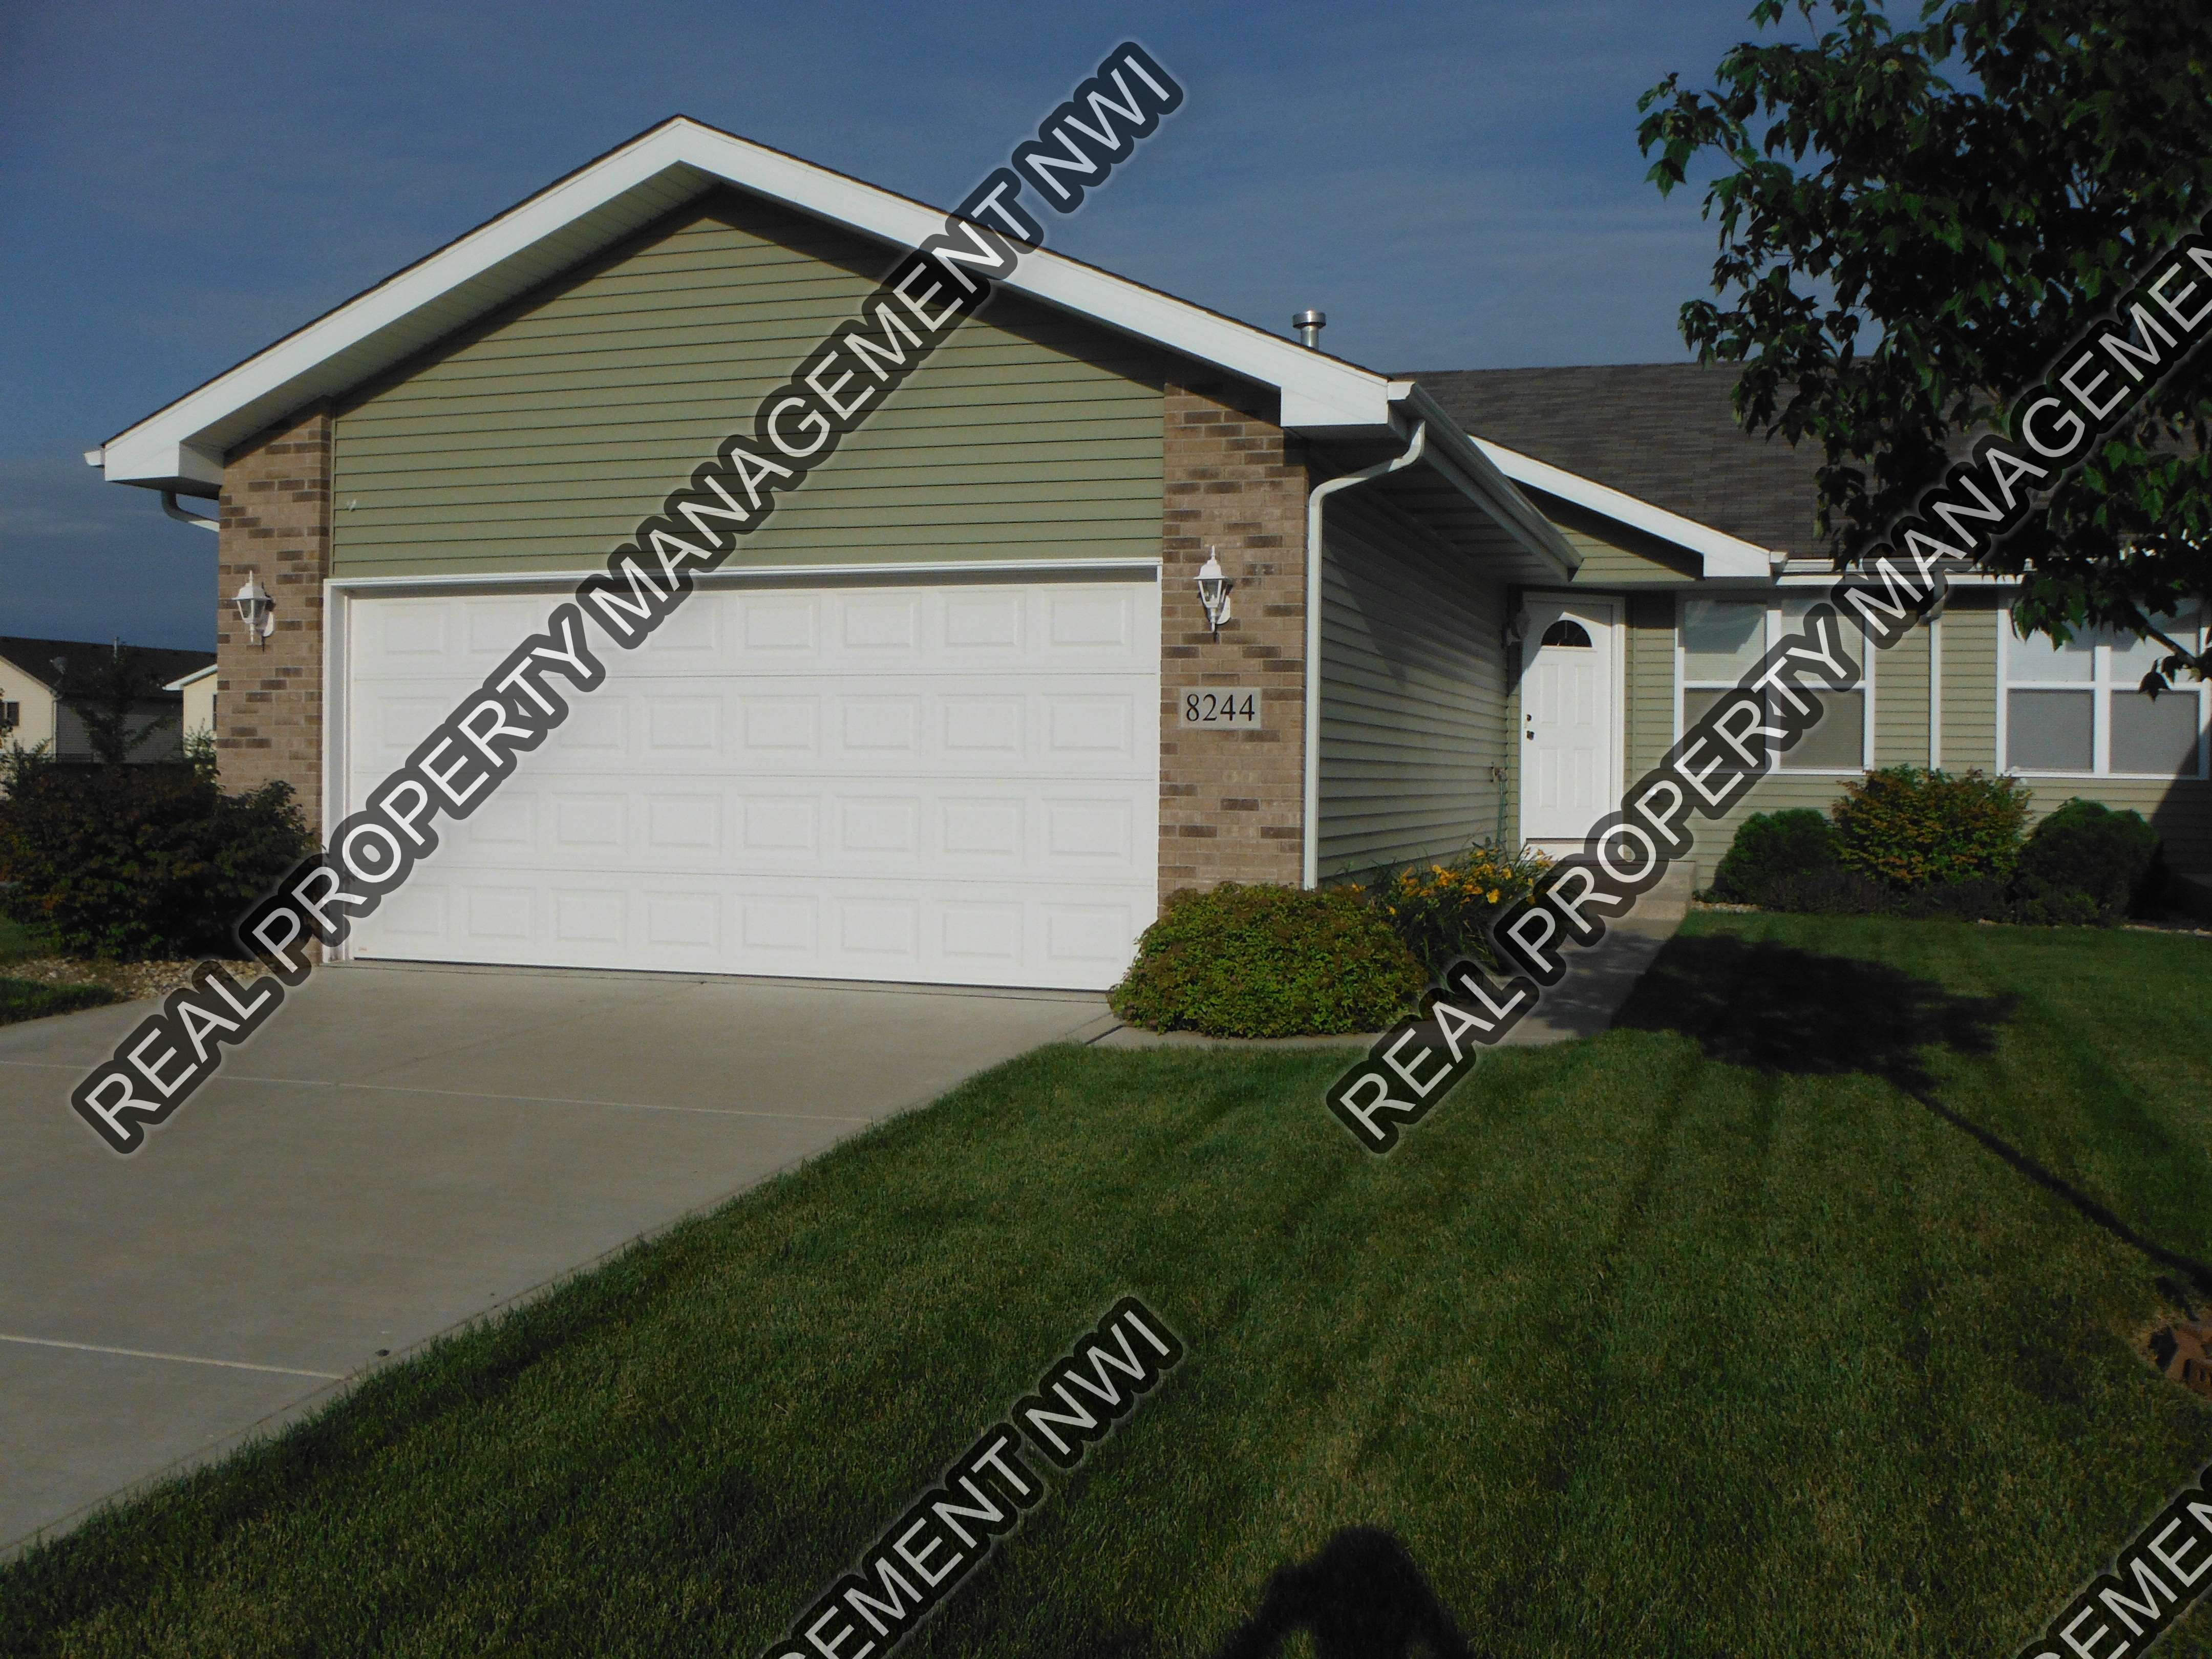 Townhouse for Rent in Merrillville